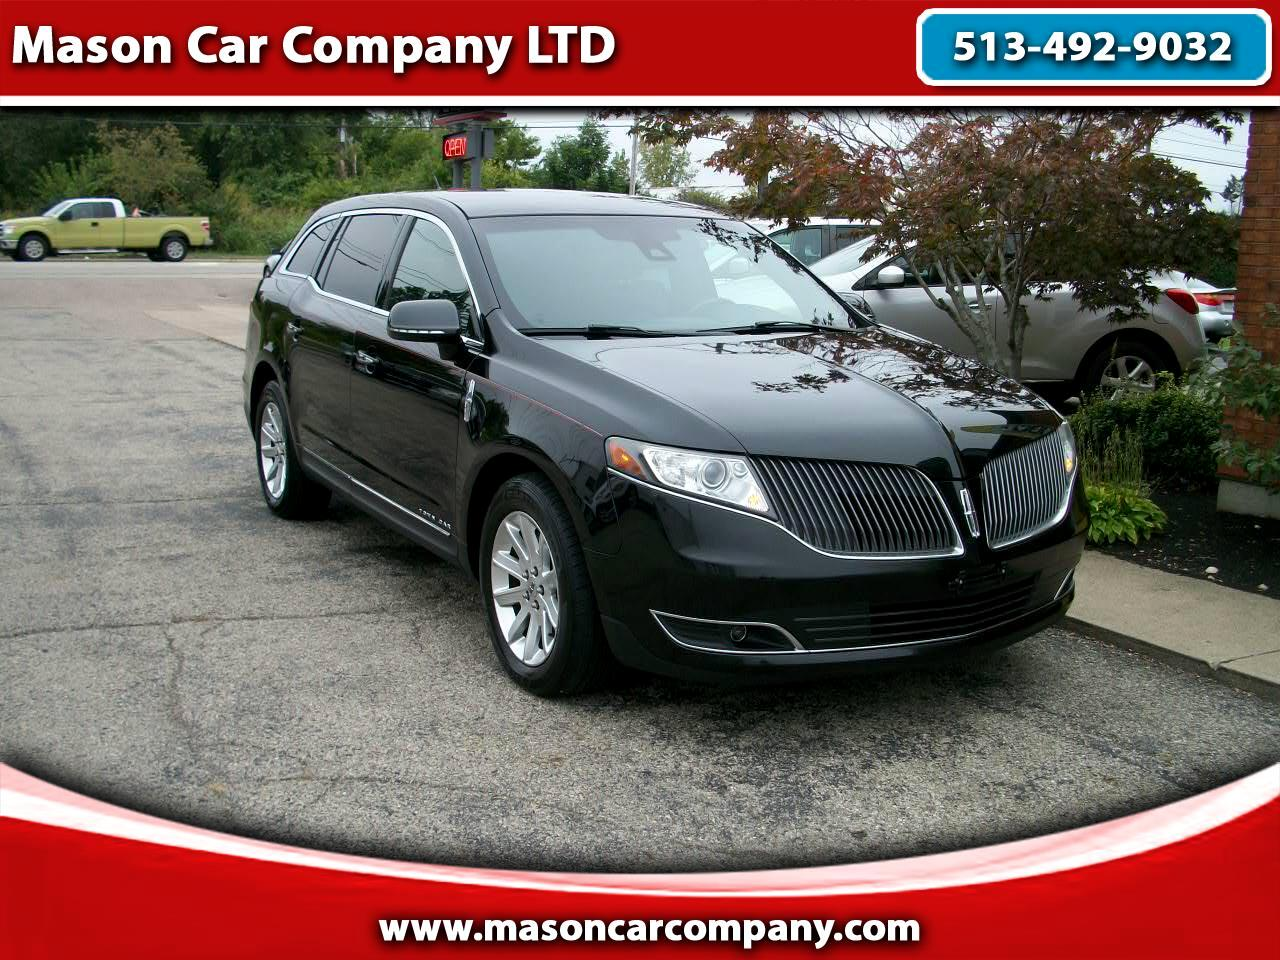 Lincoln MKT Livery AWD 2014